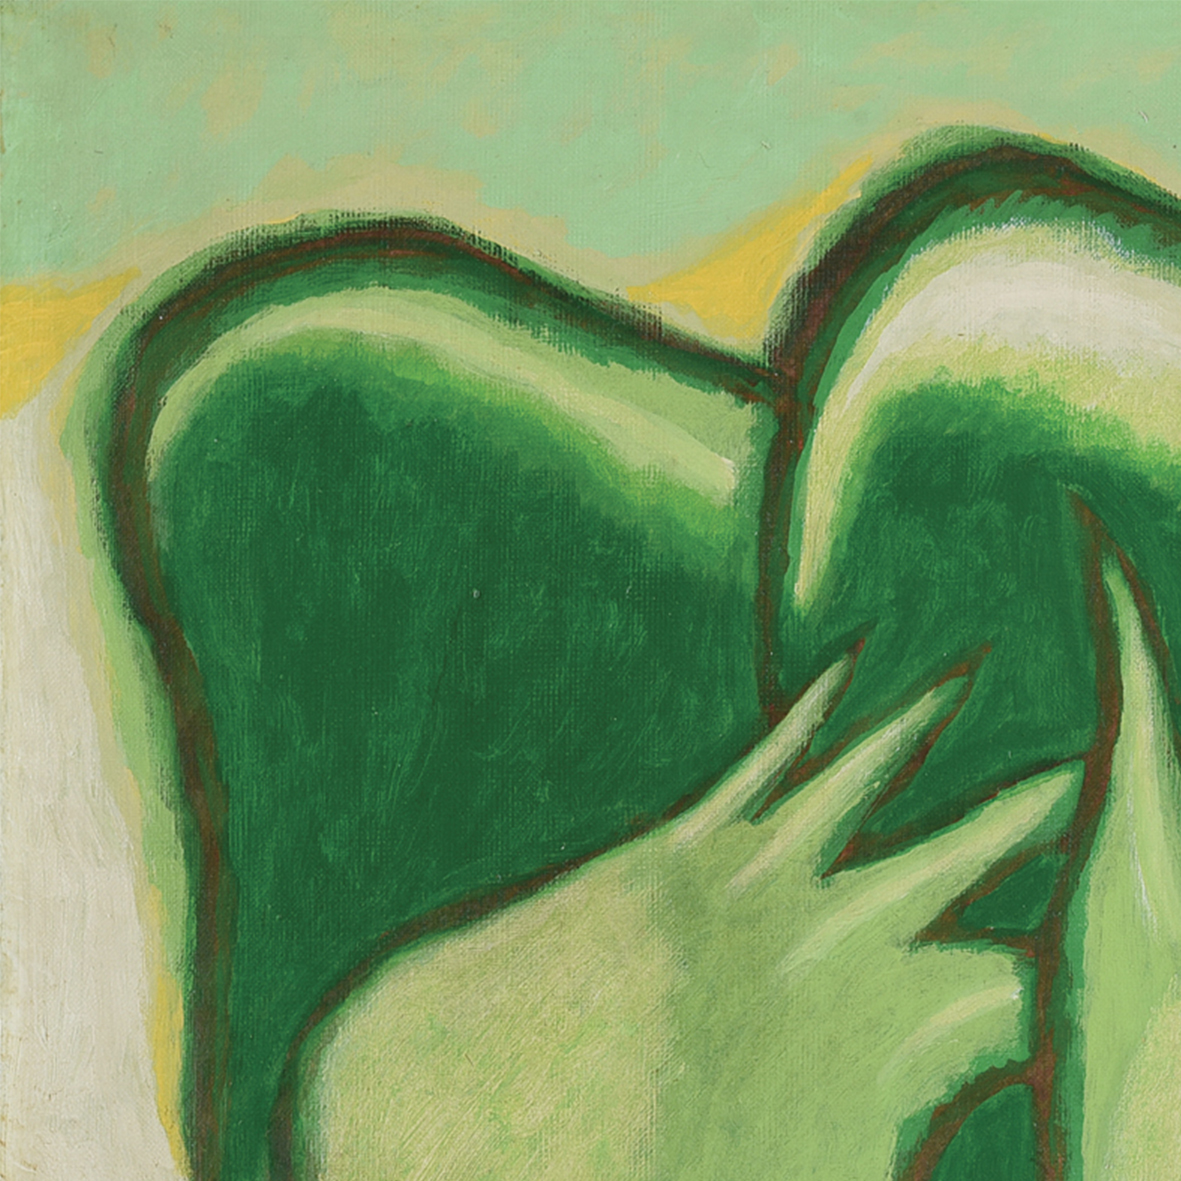 Nashar, Green Rhythm, oil on canvas, 64 x 94 cm, 1987 (detail)